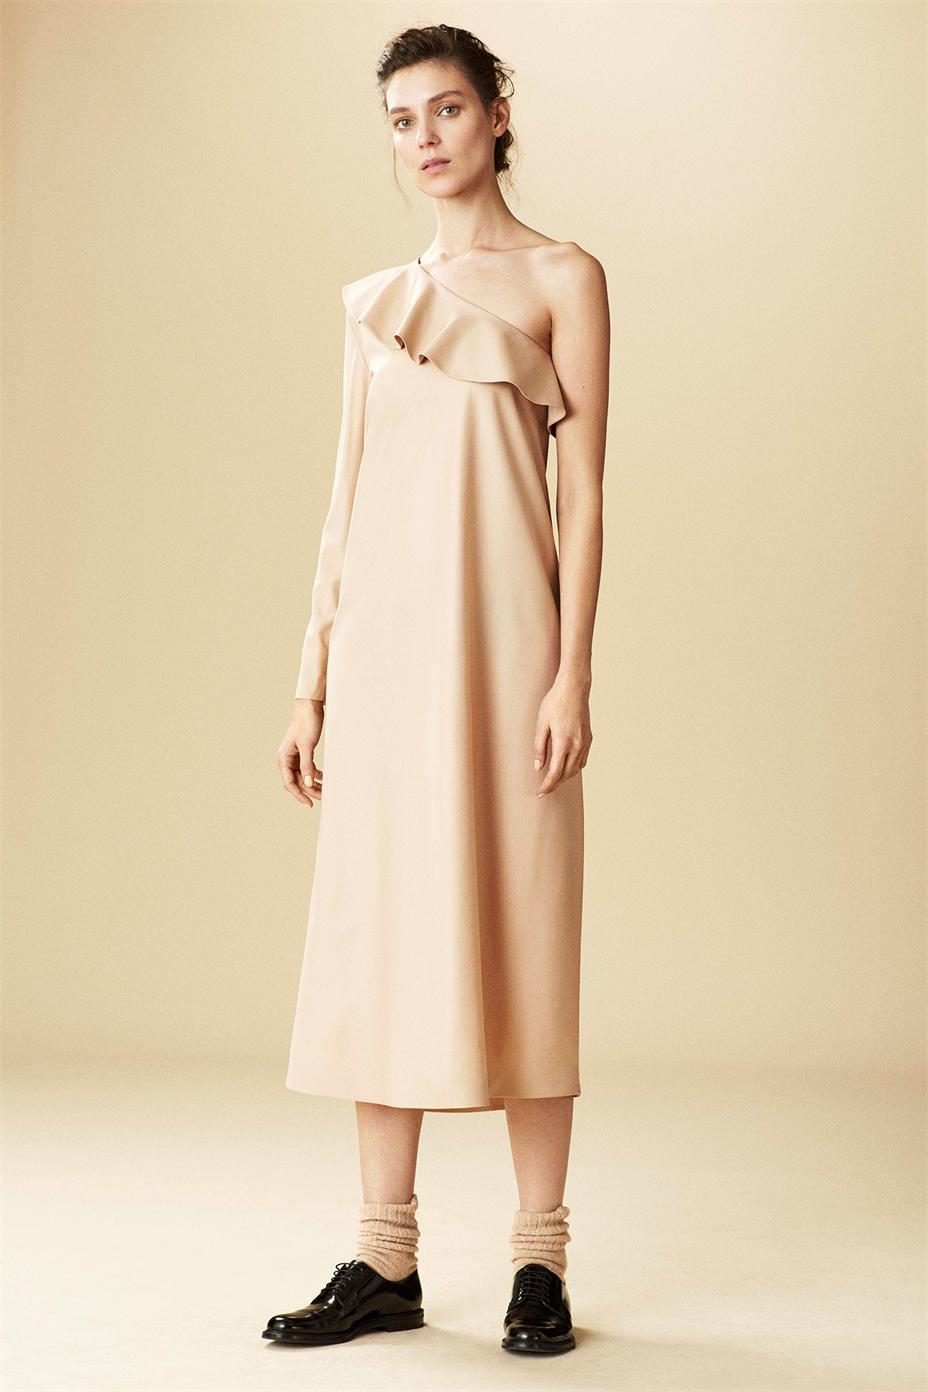 off-shoulder-dresses-fall-2015-trend-11